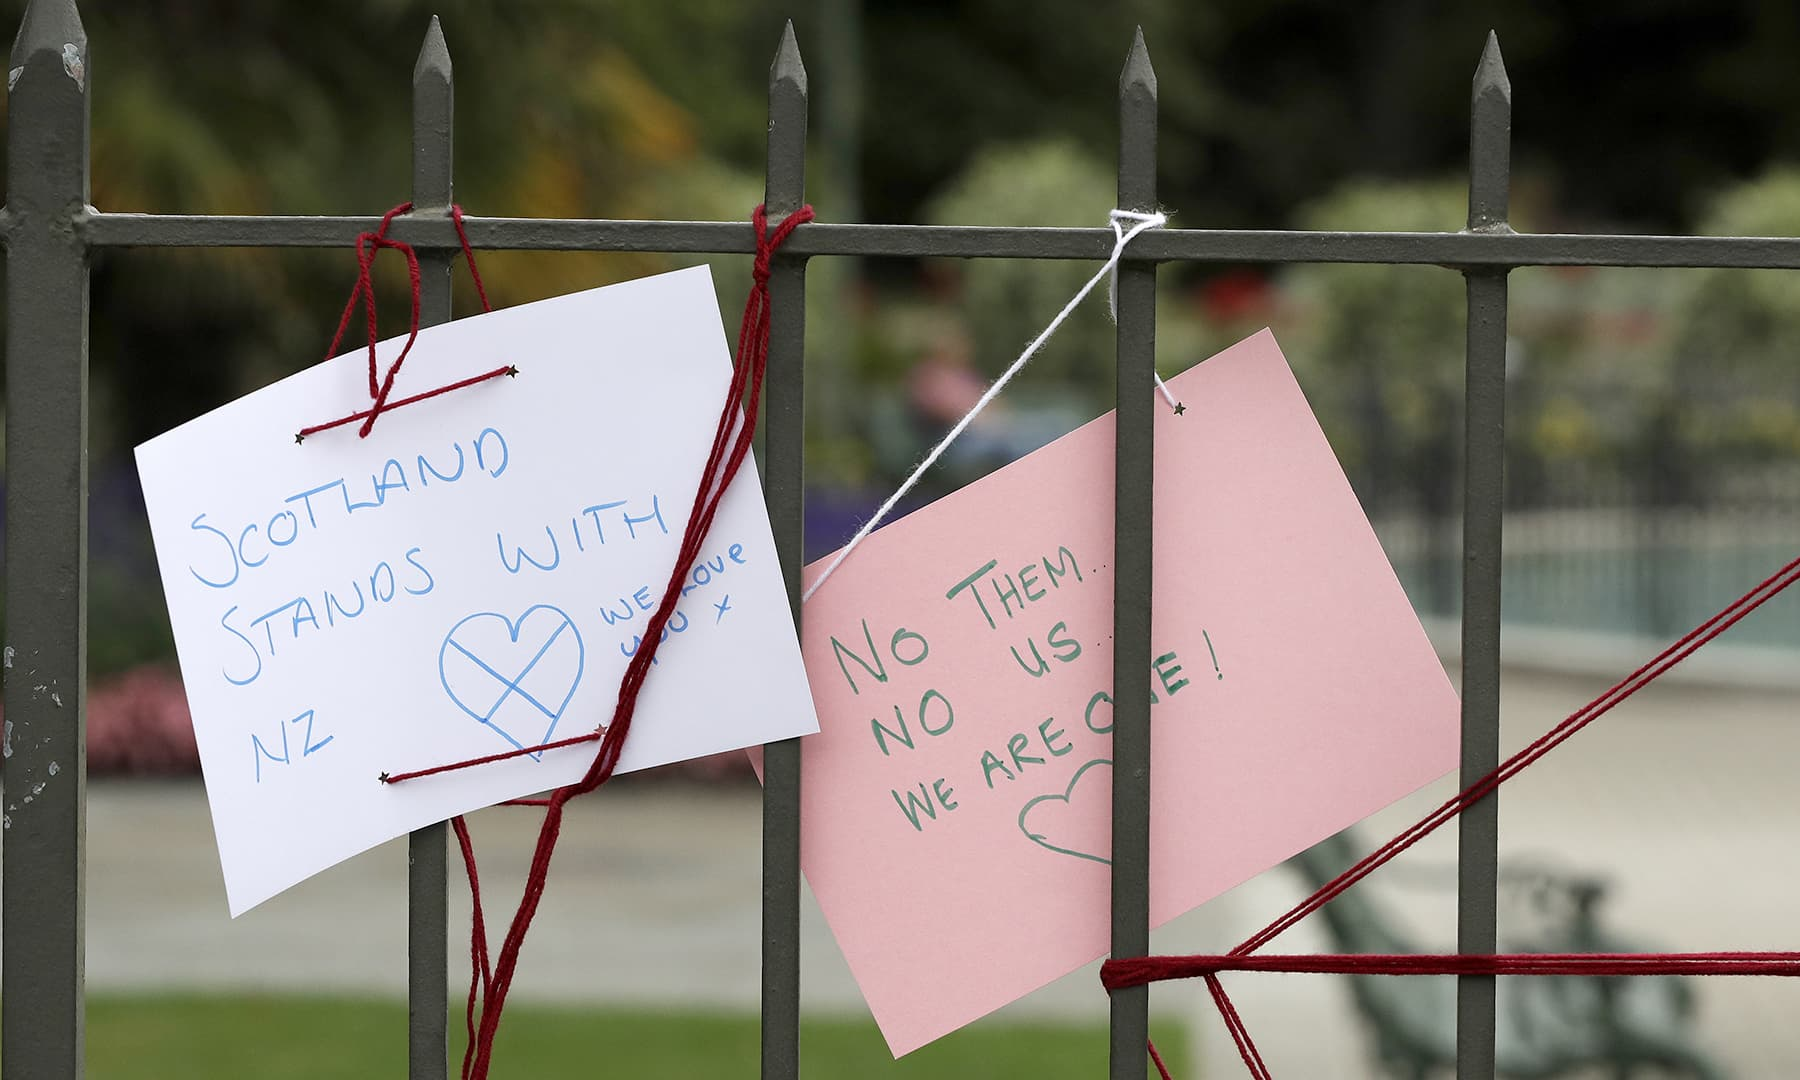 Signs are tied to a wall at the Botanical Gardens Saturday, March 16, 2019, in Christchurch, New Zealand. — AP